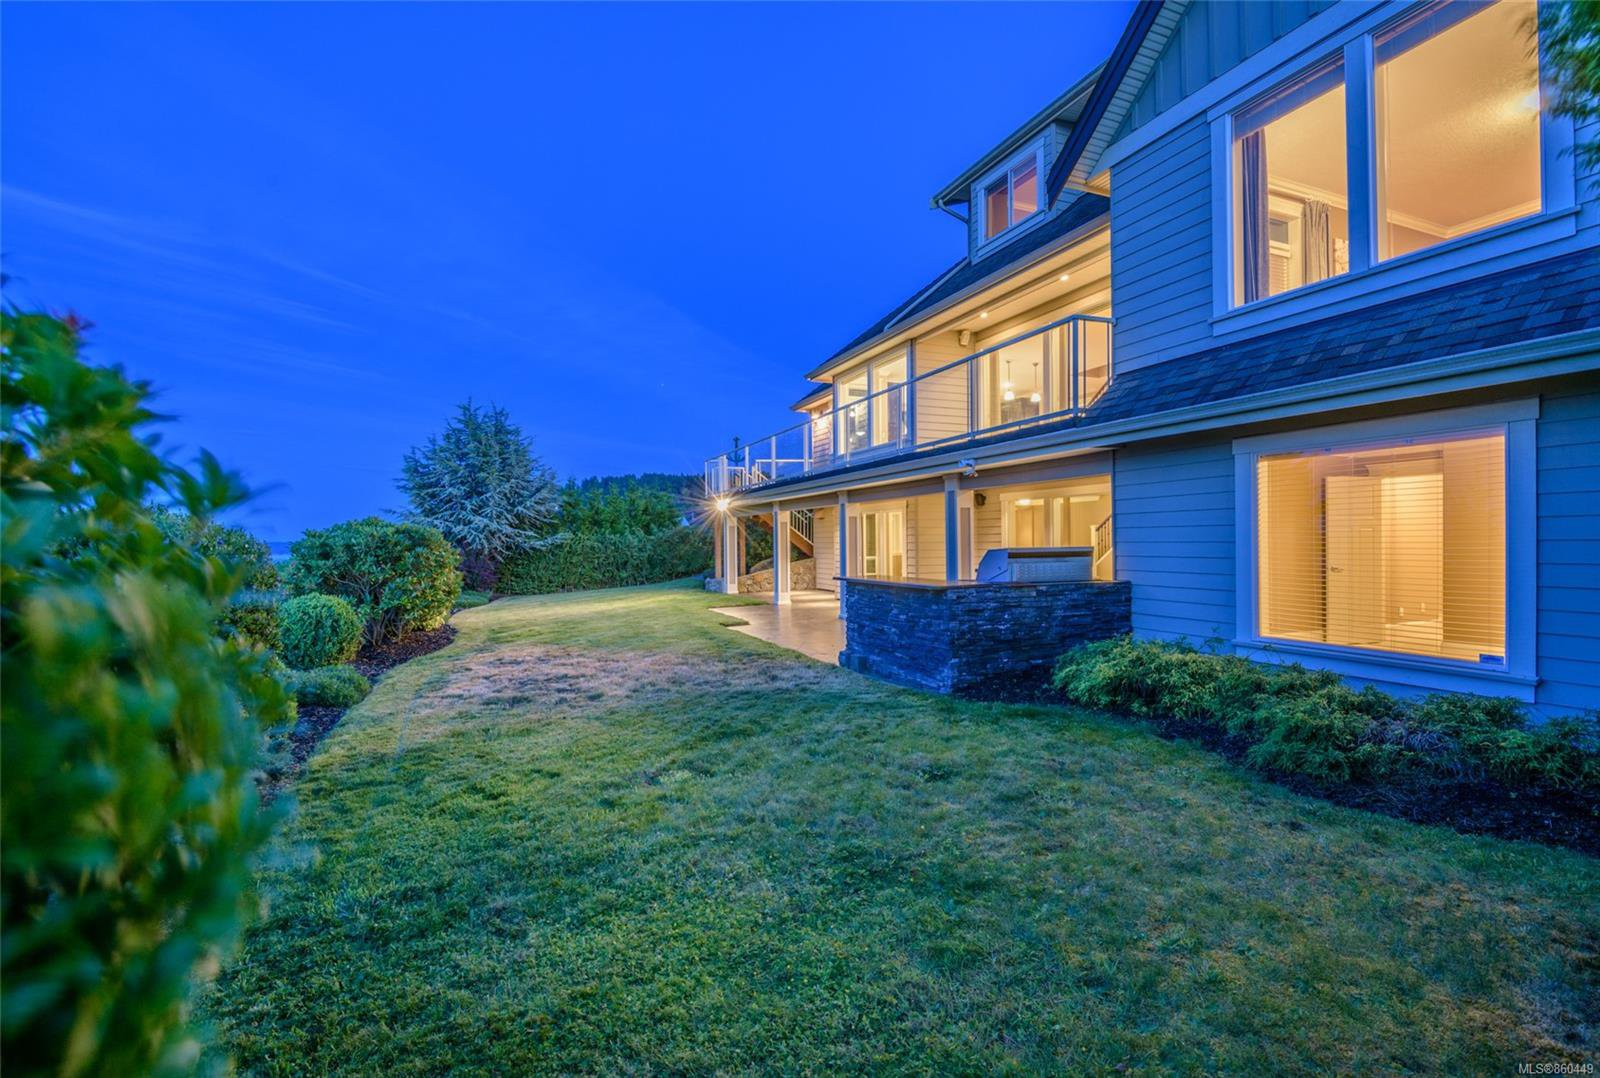 Photo 55: Photos: 5019 Hinrich View in : Na North Nanaimo House for sale (Nanaimo)  : MLS®# 860449